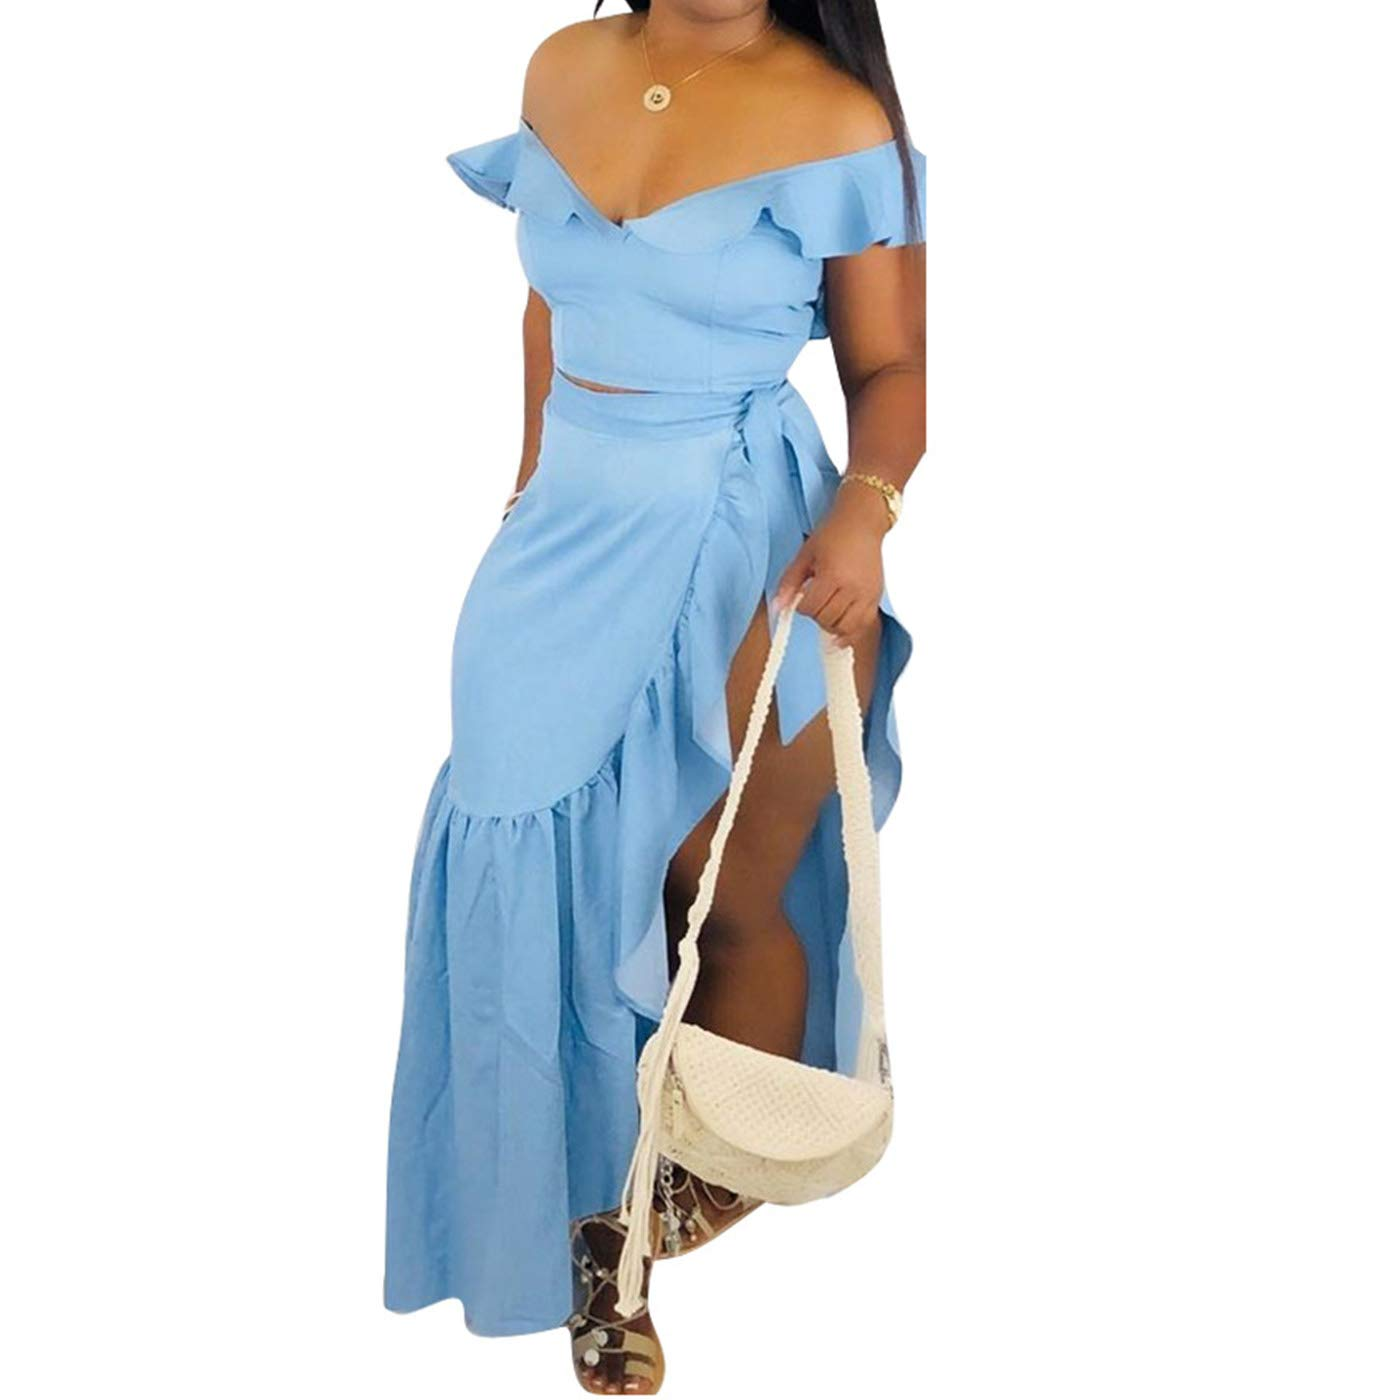 Available at Amazon: Women's 2 Piece Outfits Summer V Neck Off Shoulder Ruffle Beach Crop Top and Slit Skirt Setes